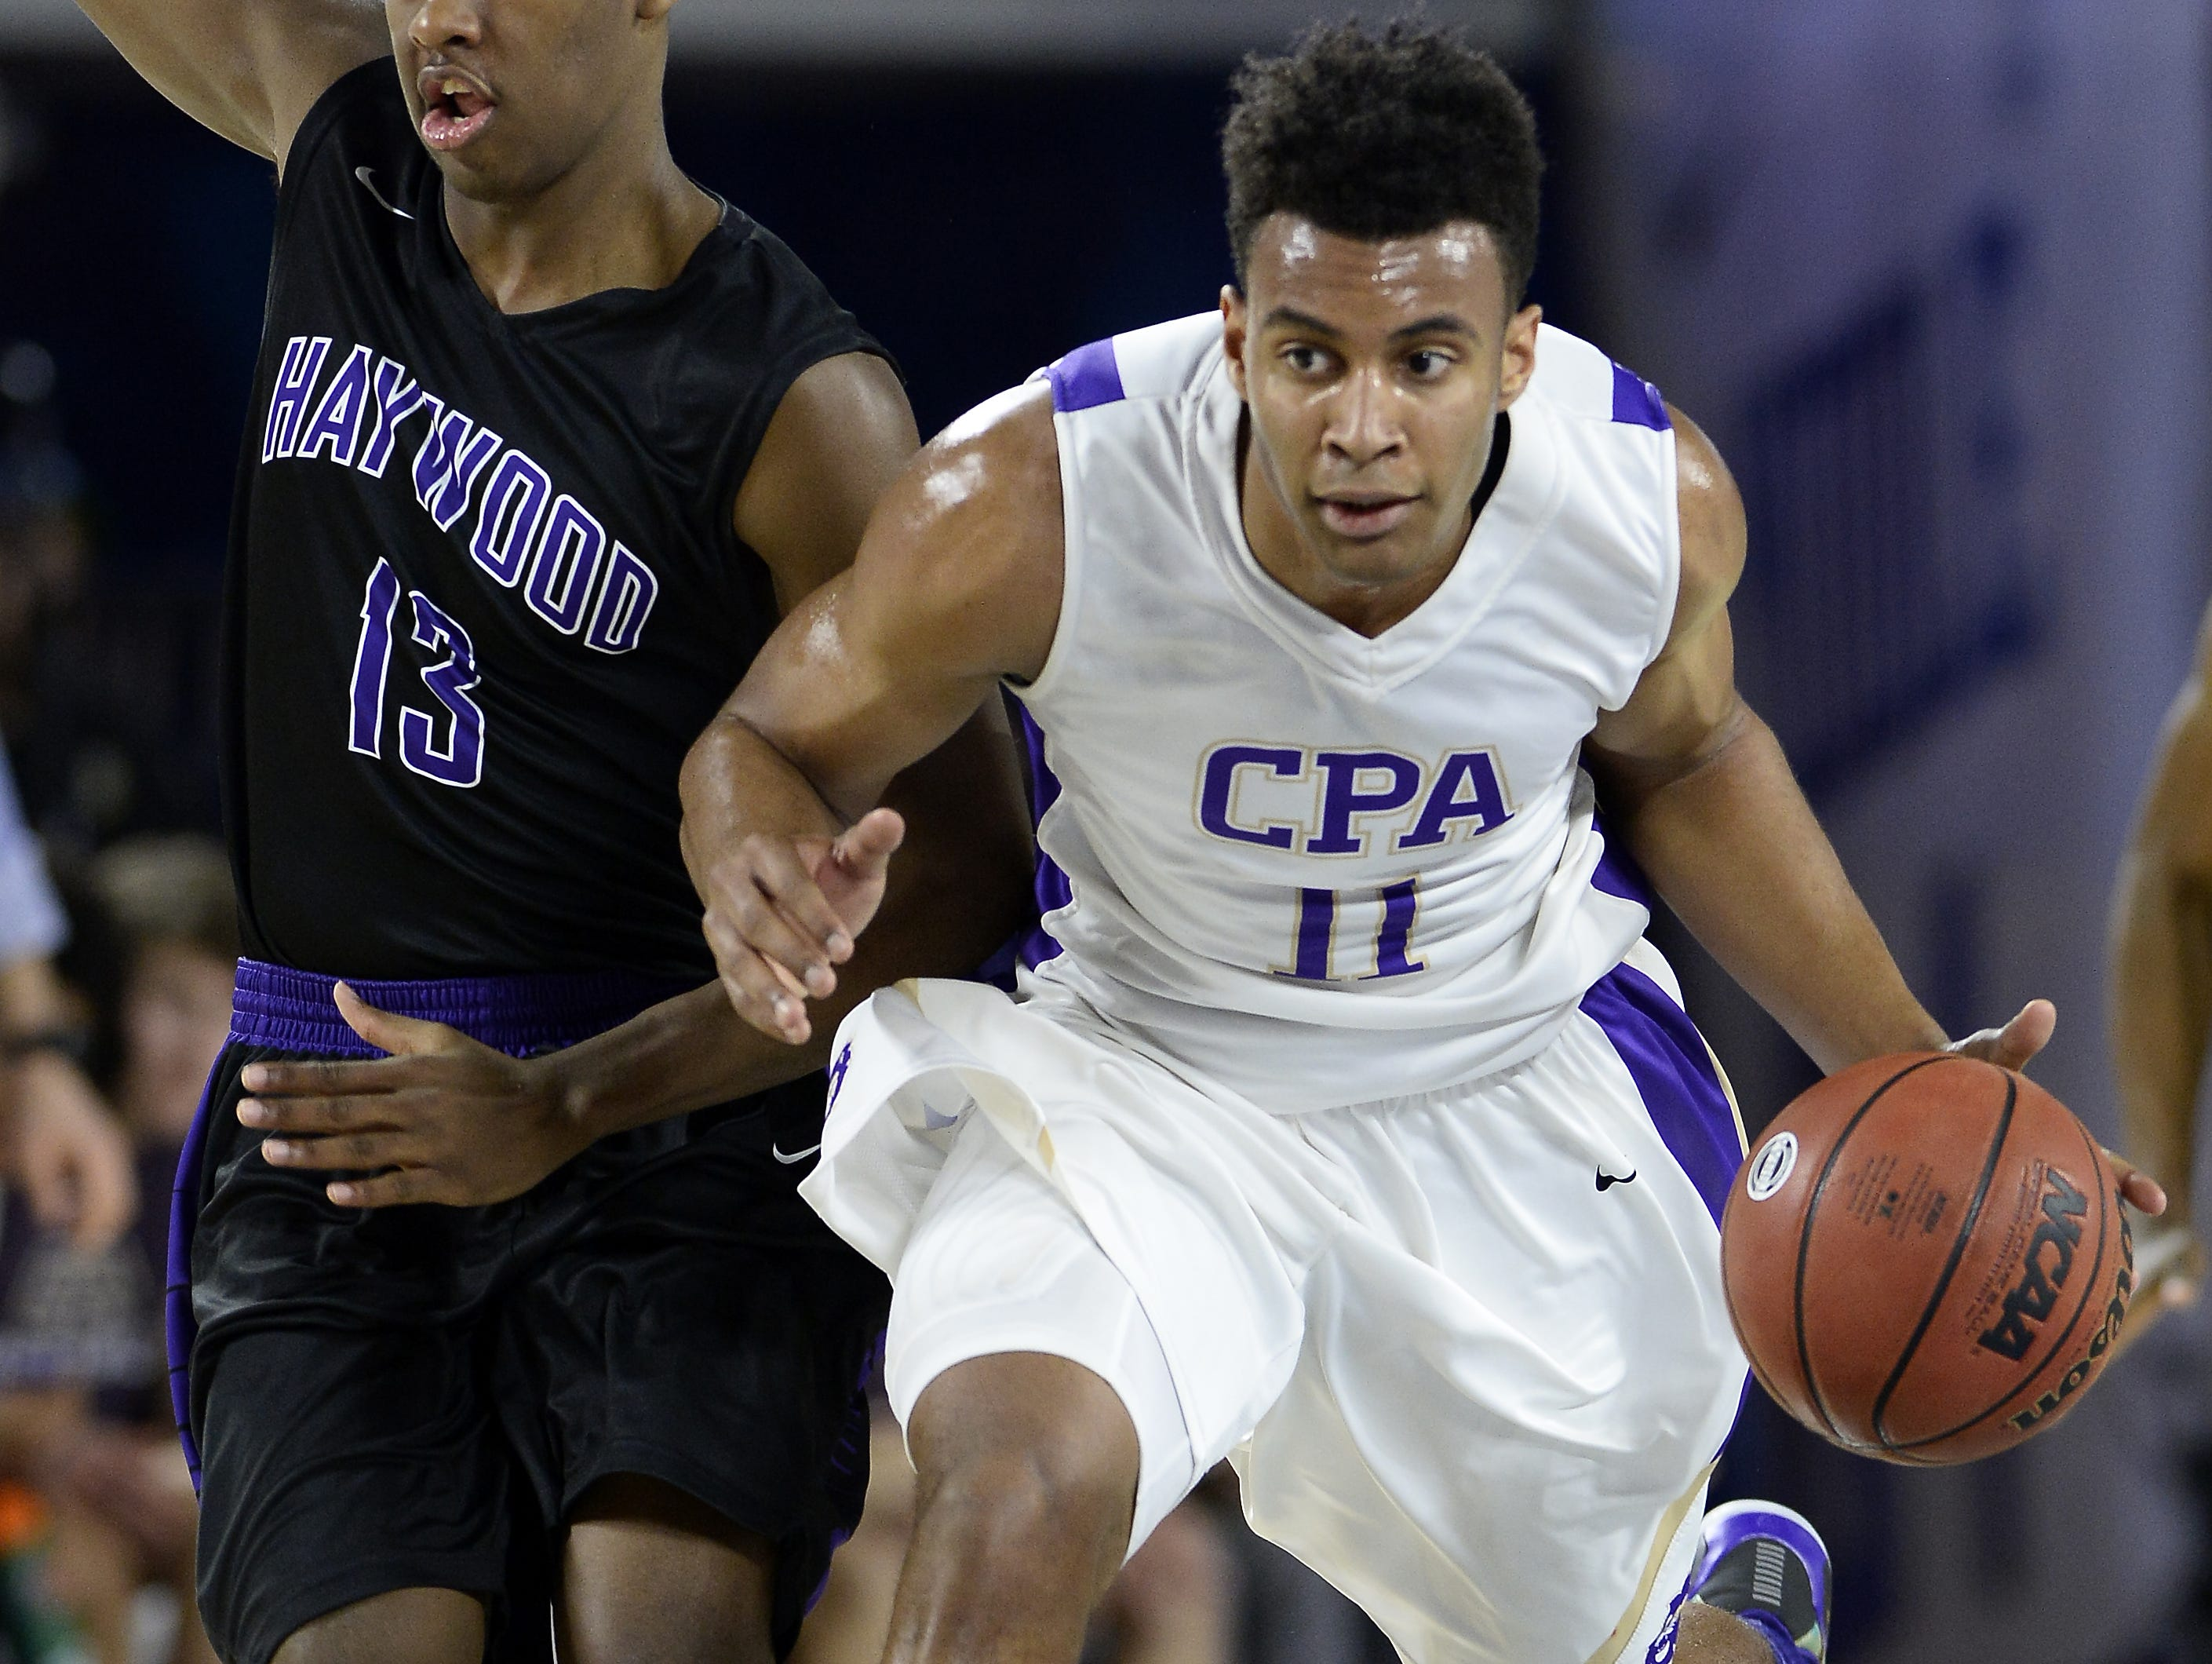 Former CPA standout Braxton Blackwell (right) made his college commitment on Wednesday.